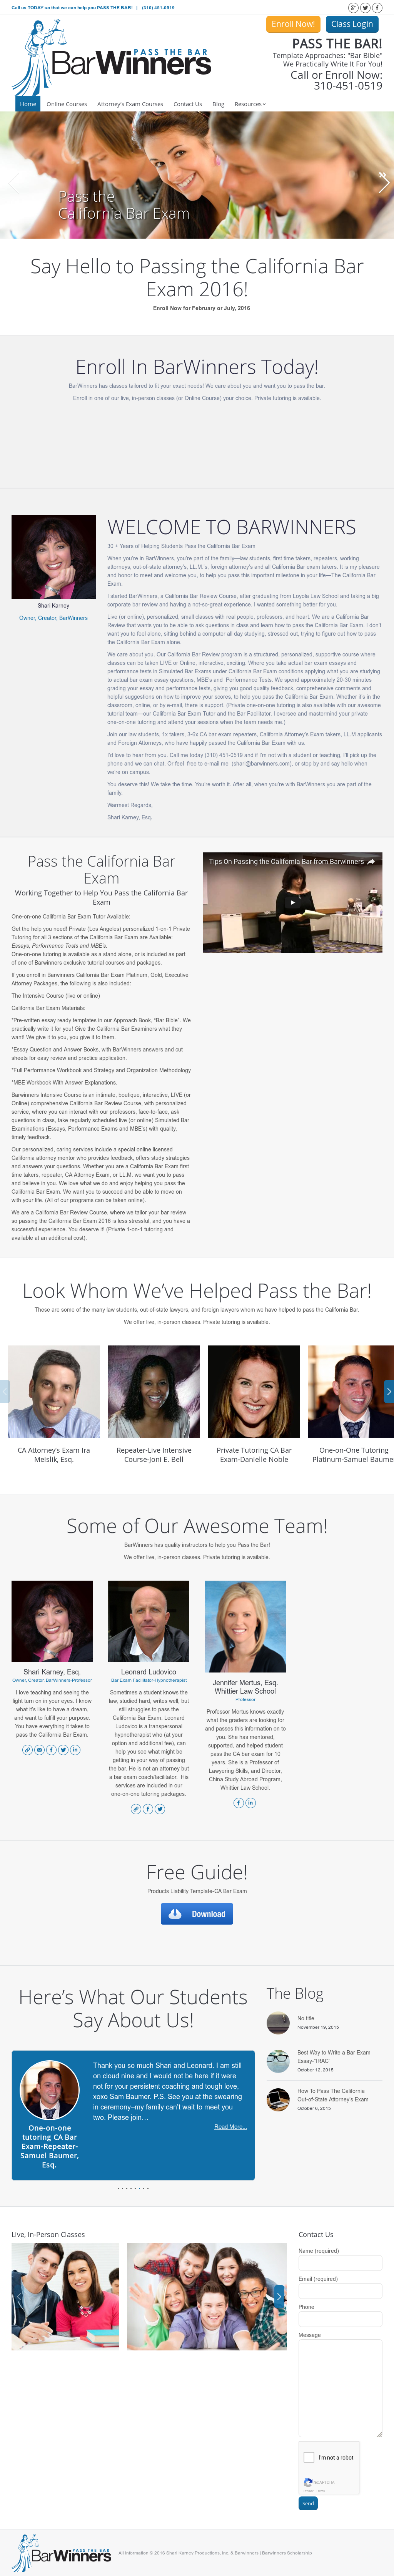 BarWinners Competitors, Revenue and Employees - Owler